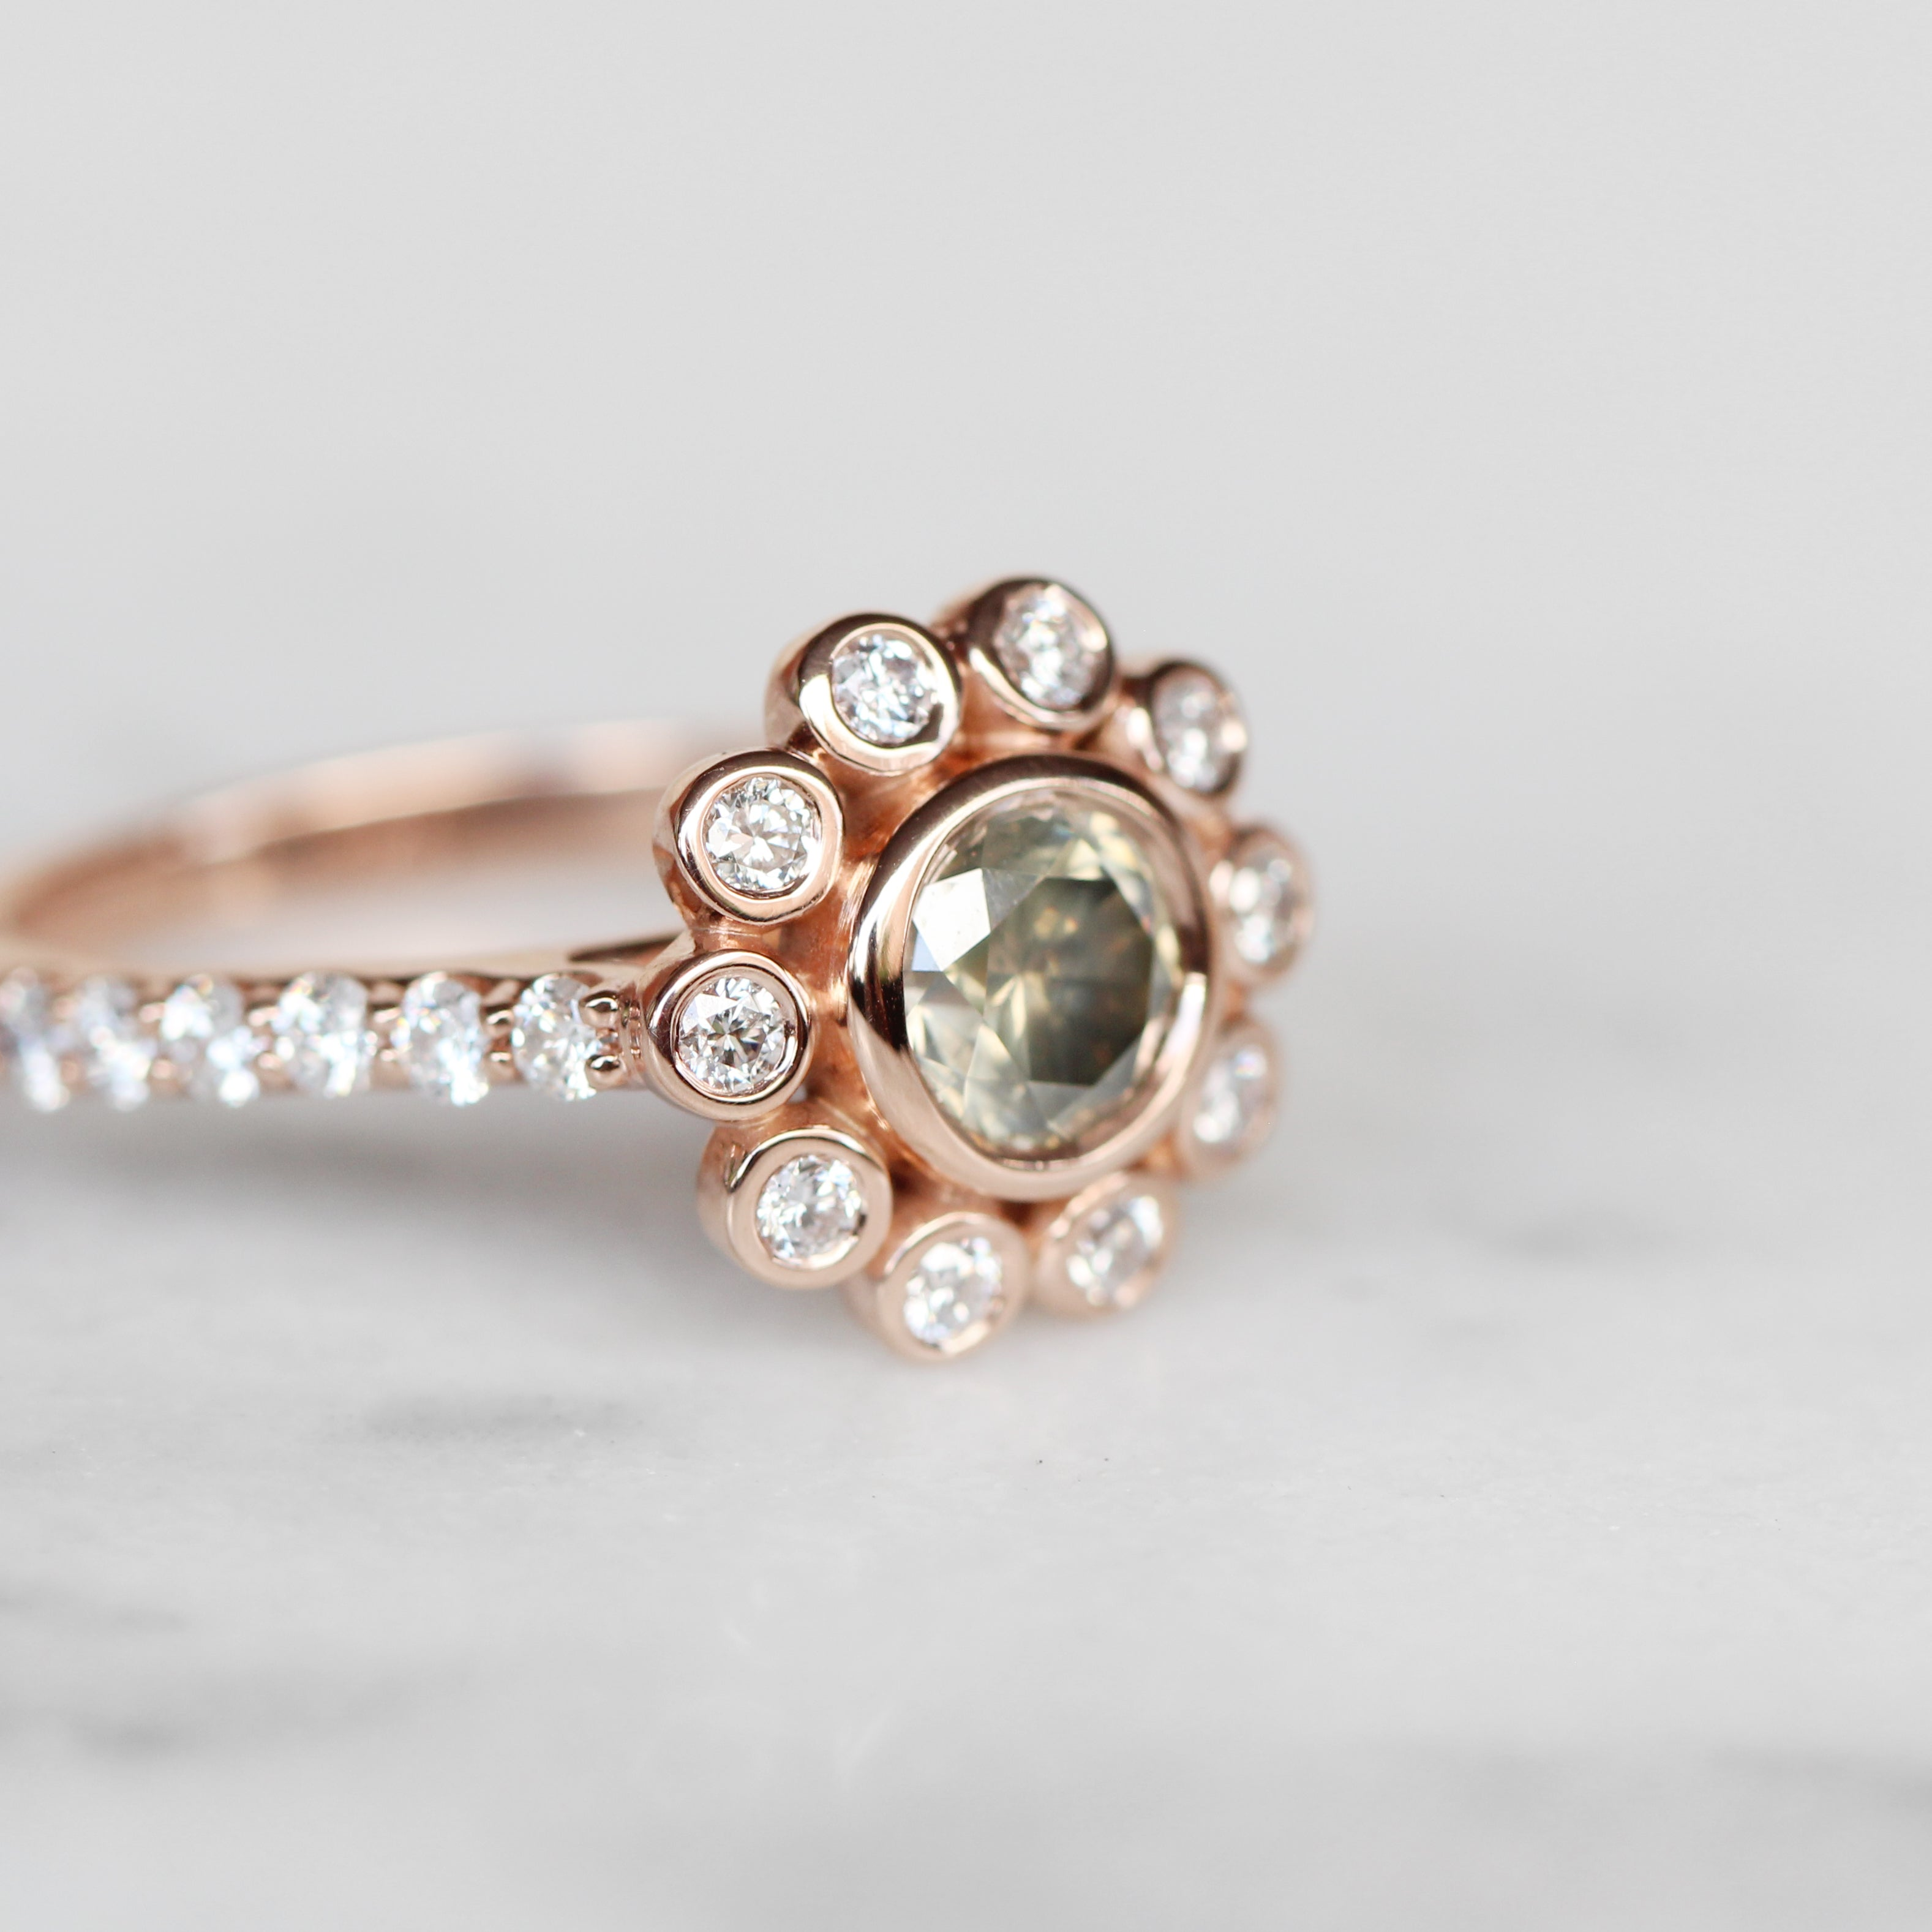 Minnie Antique Style bezel ring with a 1.02 carat certified diamond in 10k rose gold - ready to size and ship - Salt & Pepper Celestial Diamond Engagement Rings and Wedding Bands  by Midwinter Co.